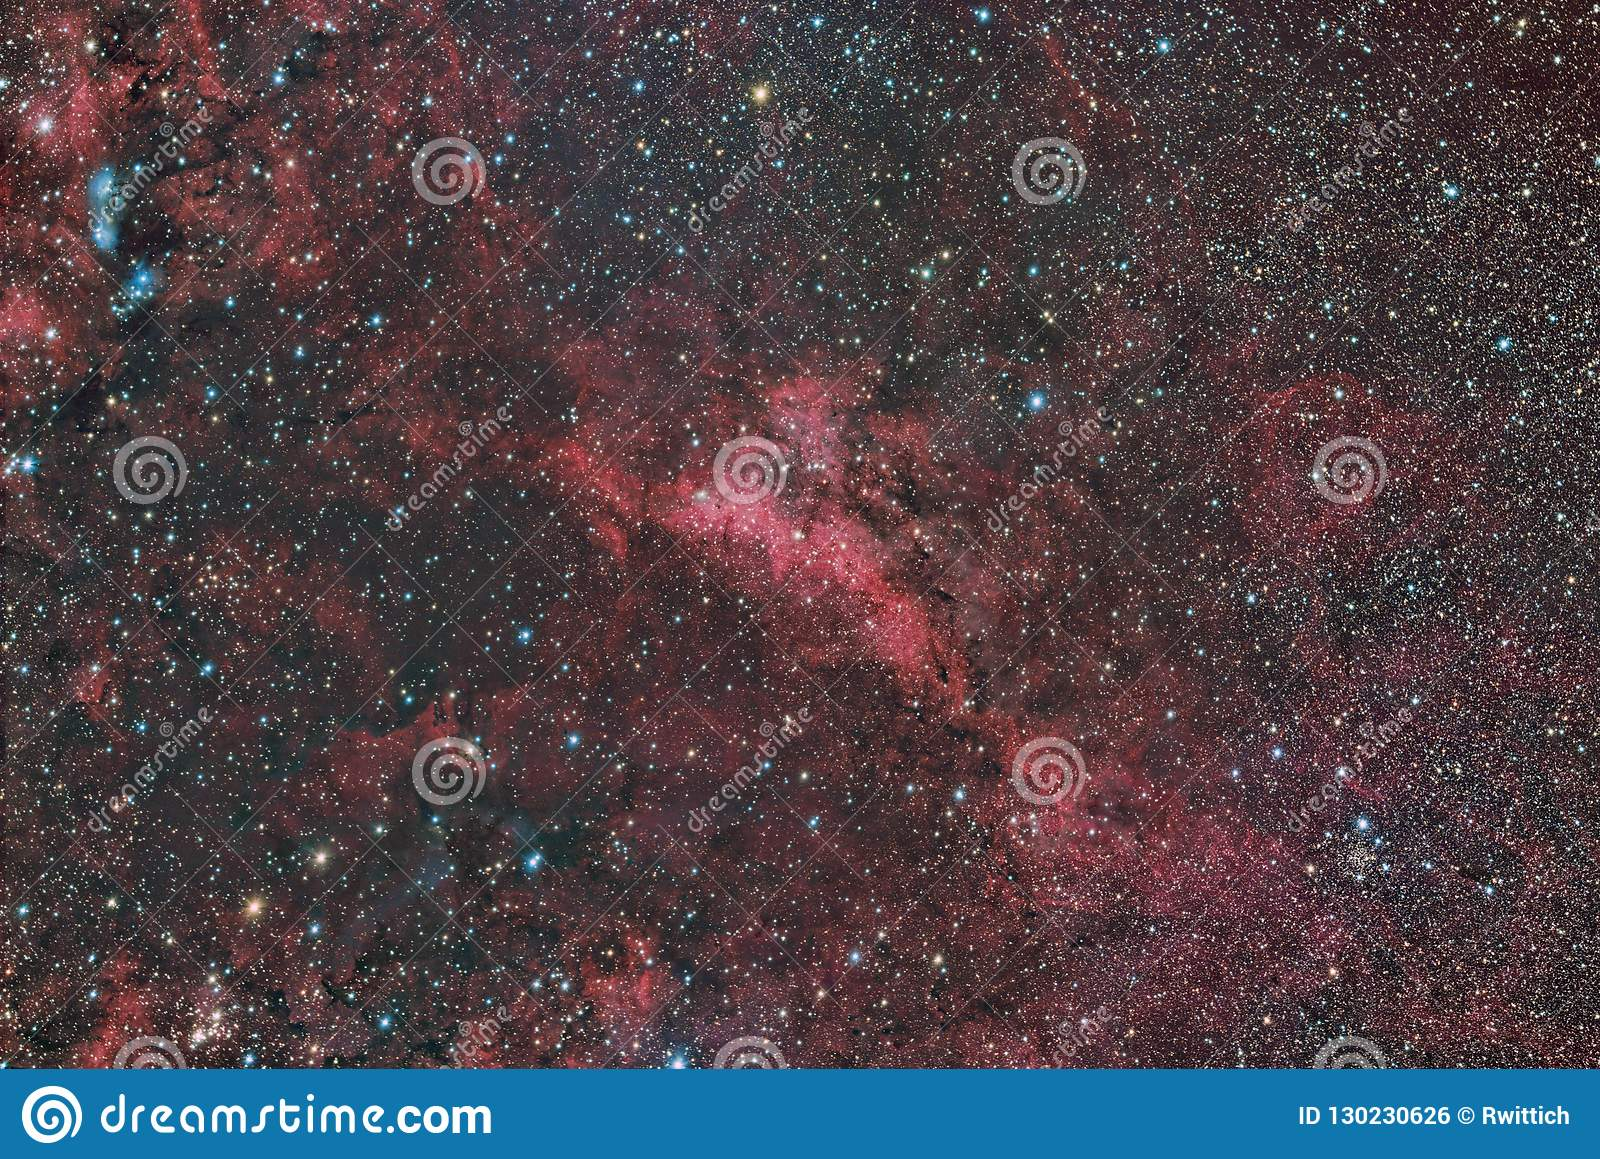 LBN 251 emission and reflection nebula in the constellation Cygnus